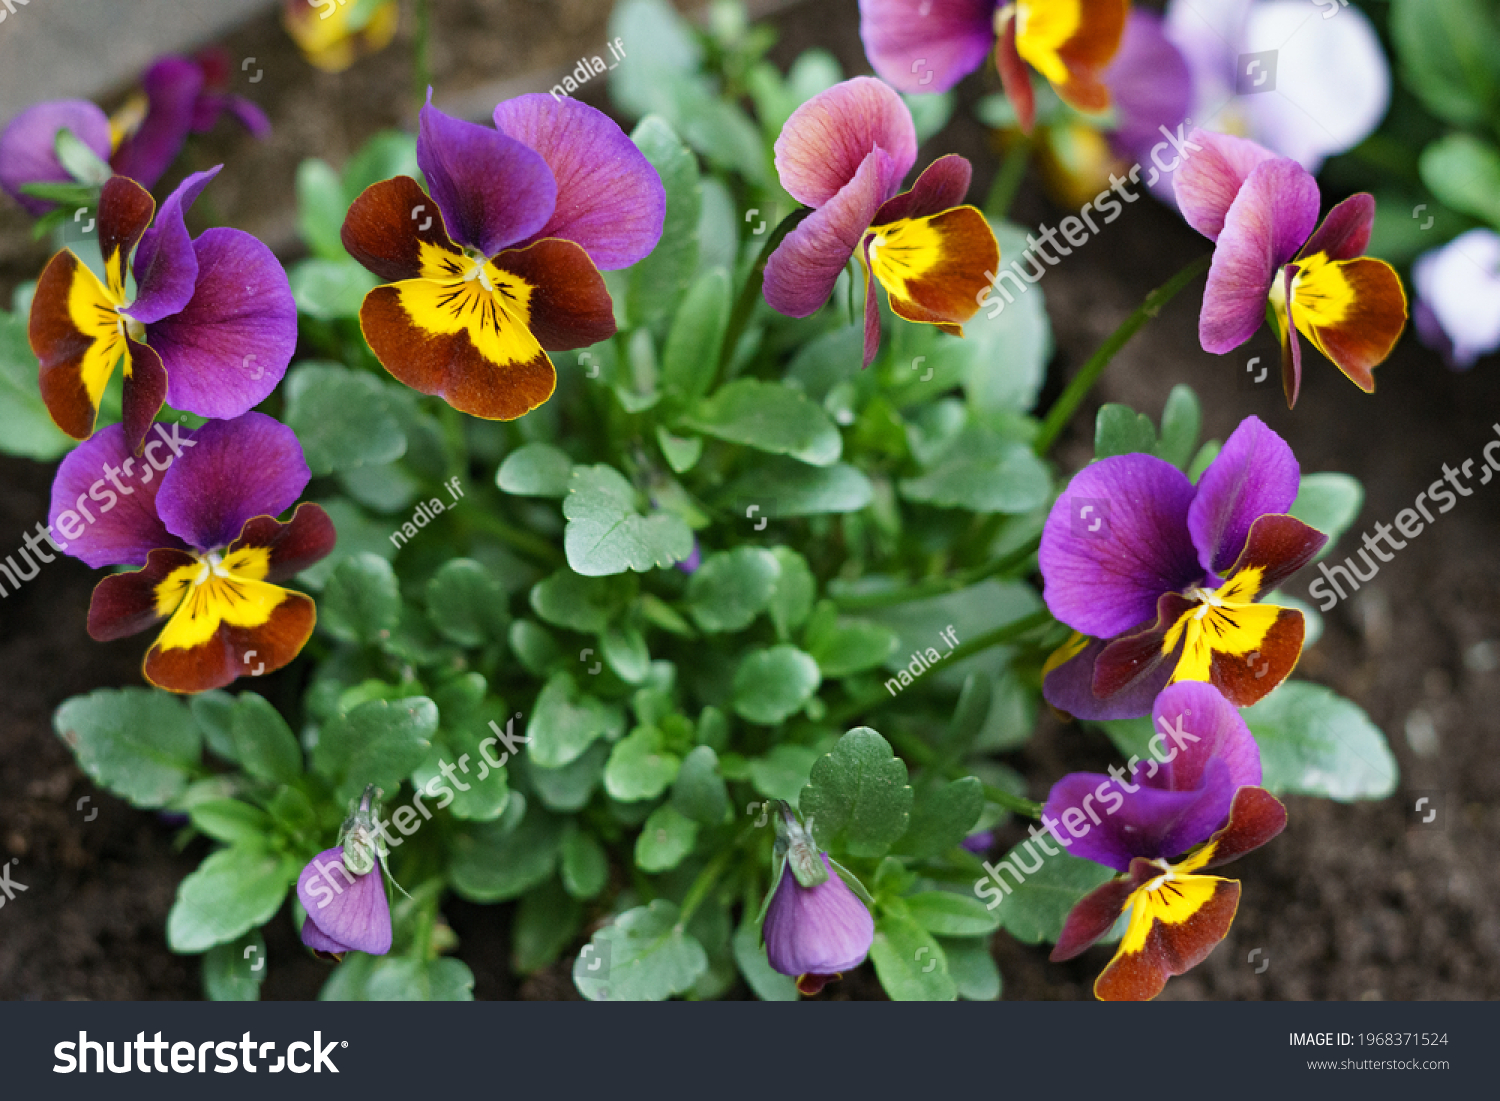 Blue violet flower in the garden. High quality photo #1968371524